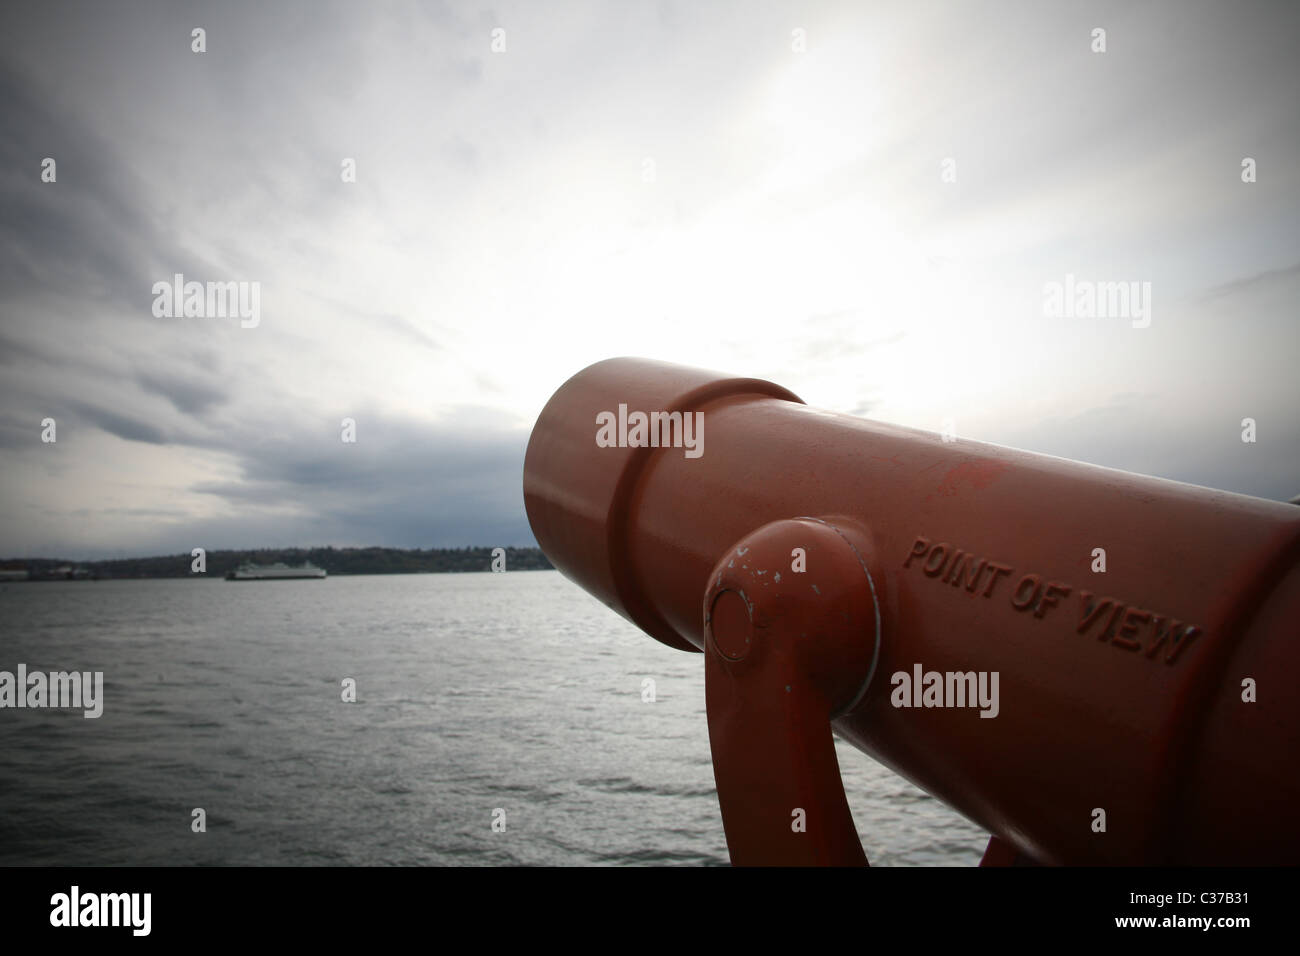 Coin-Operated Binoculars (telescope) with cloudy sky. - Stock Image